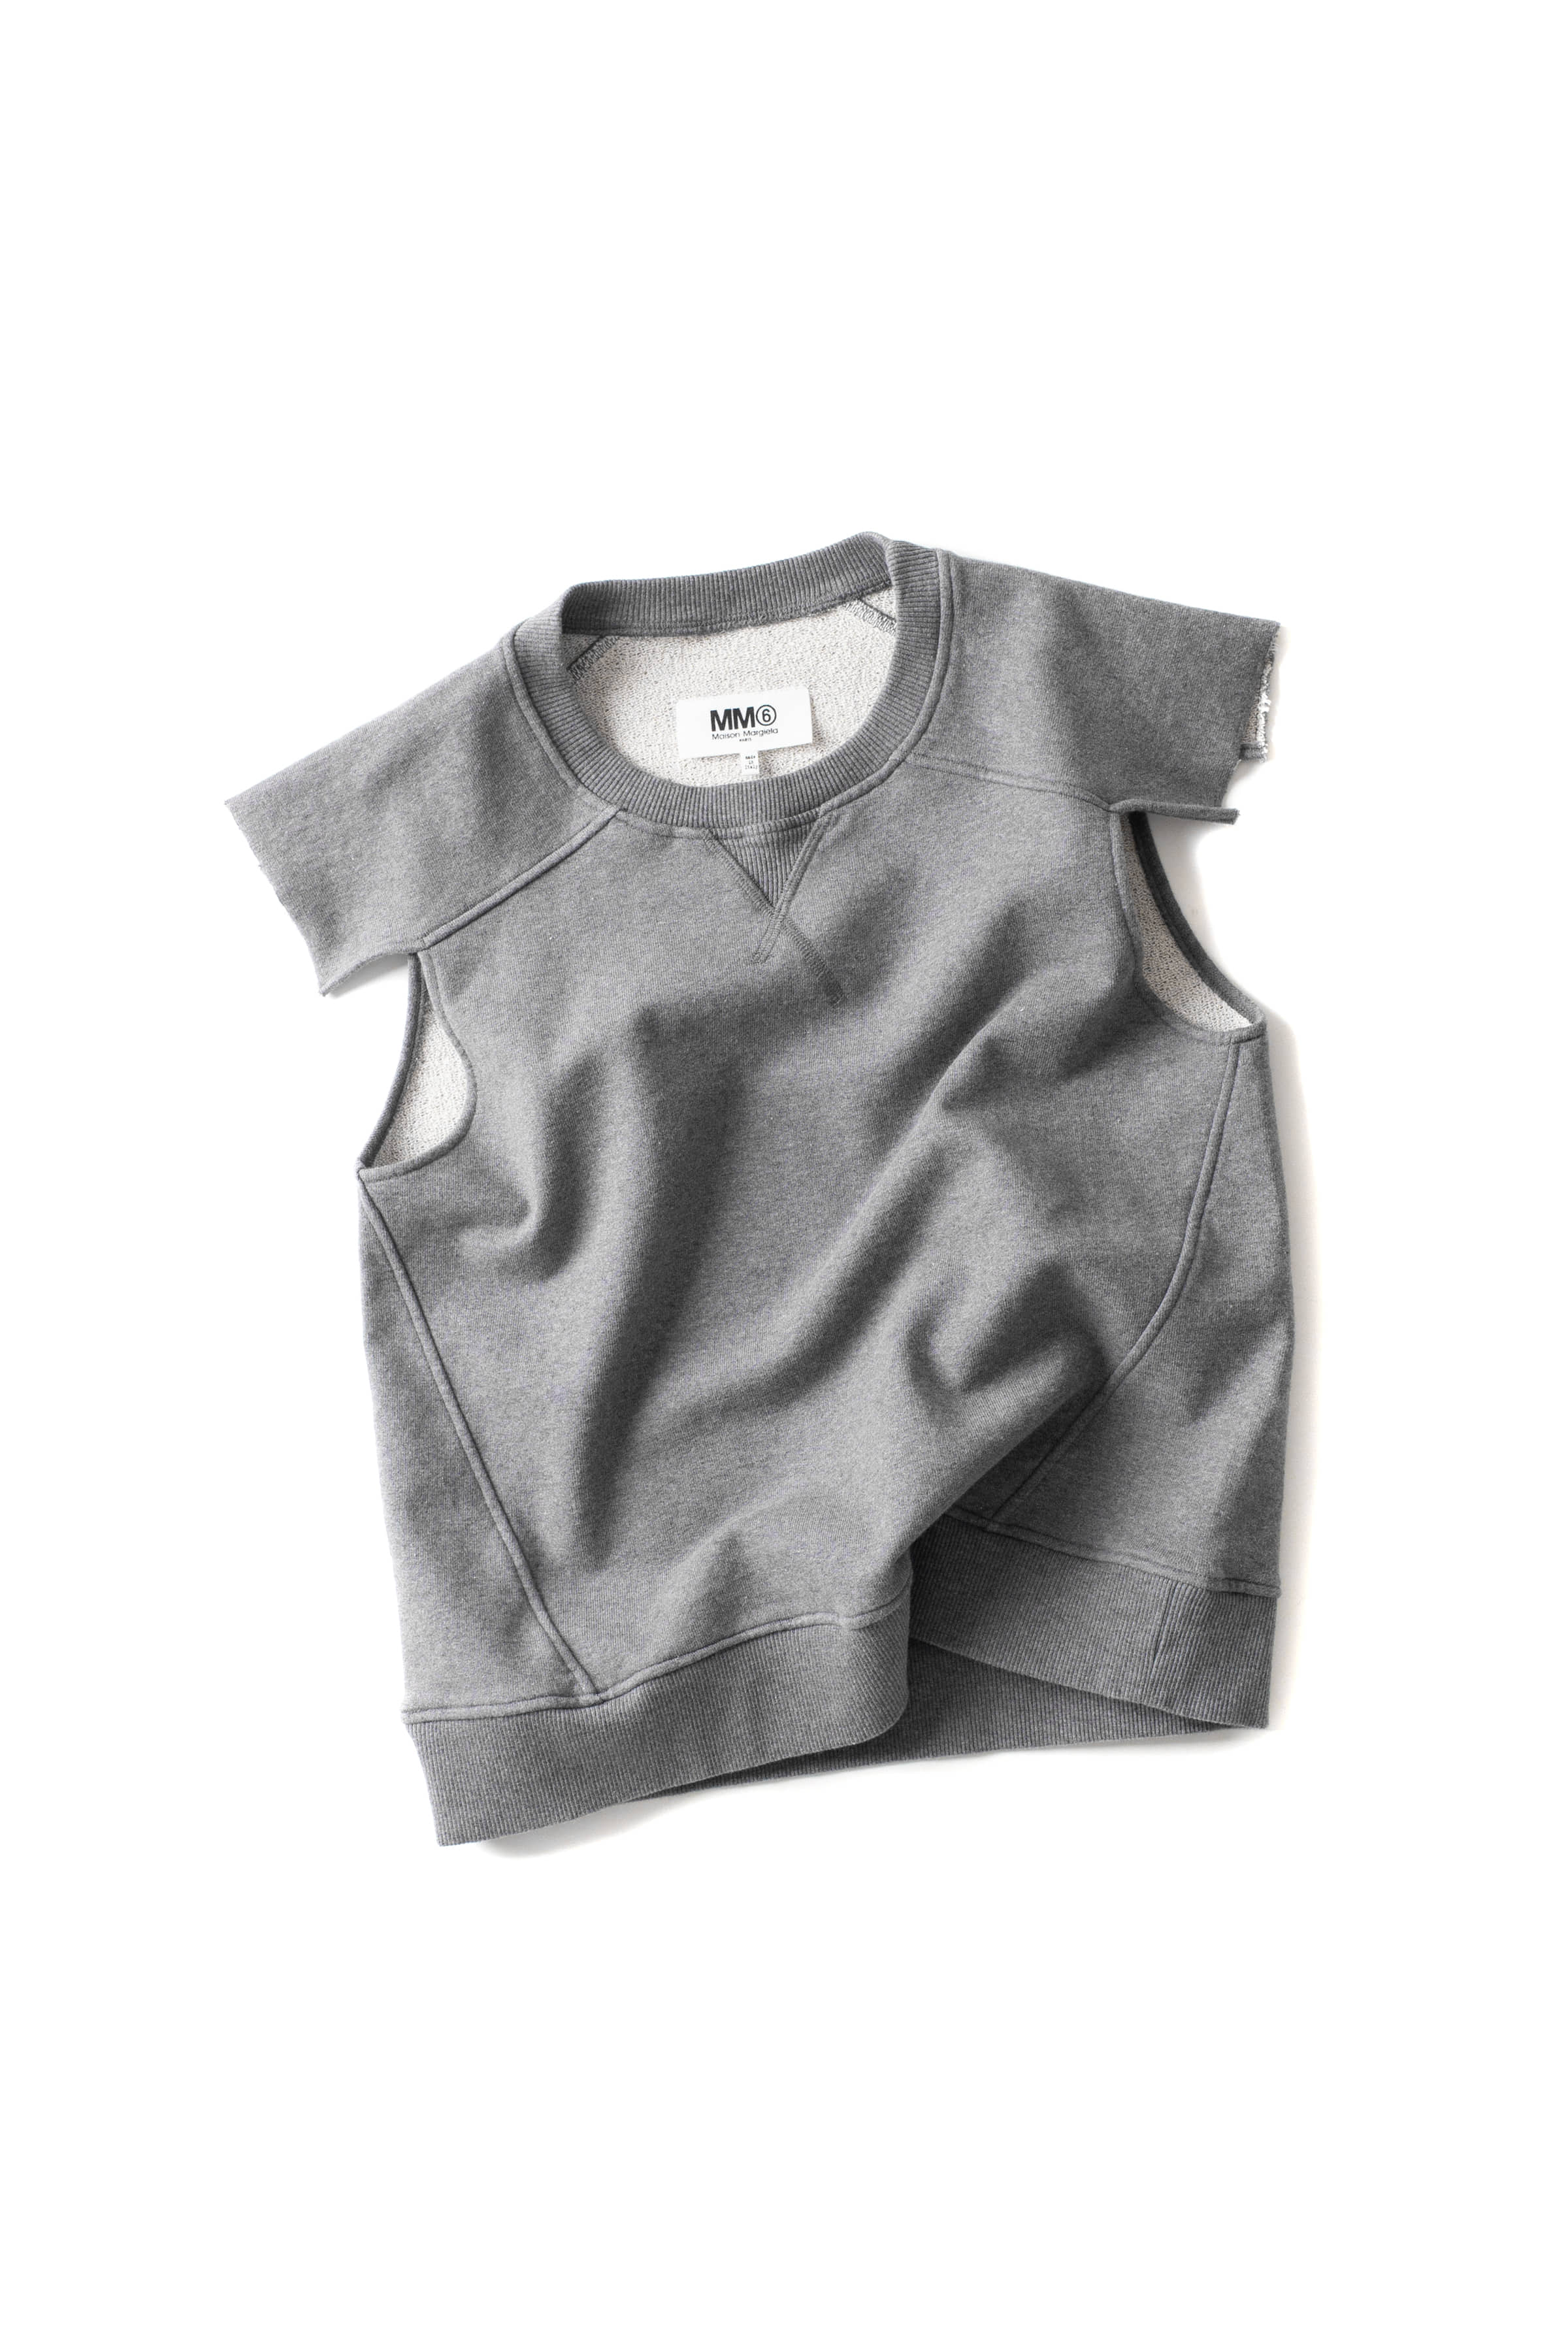 MM6 Maison Margiela : Sweatshirt for Women (Charcoal)